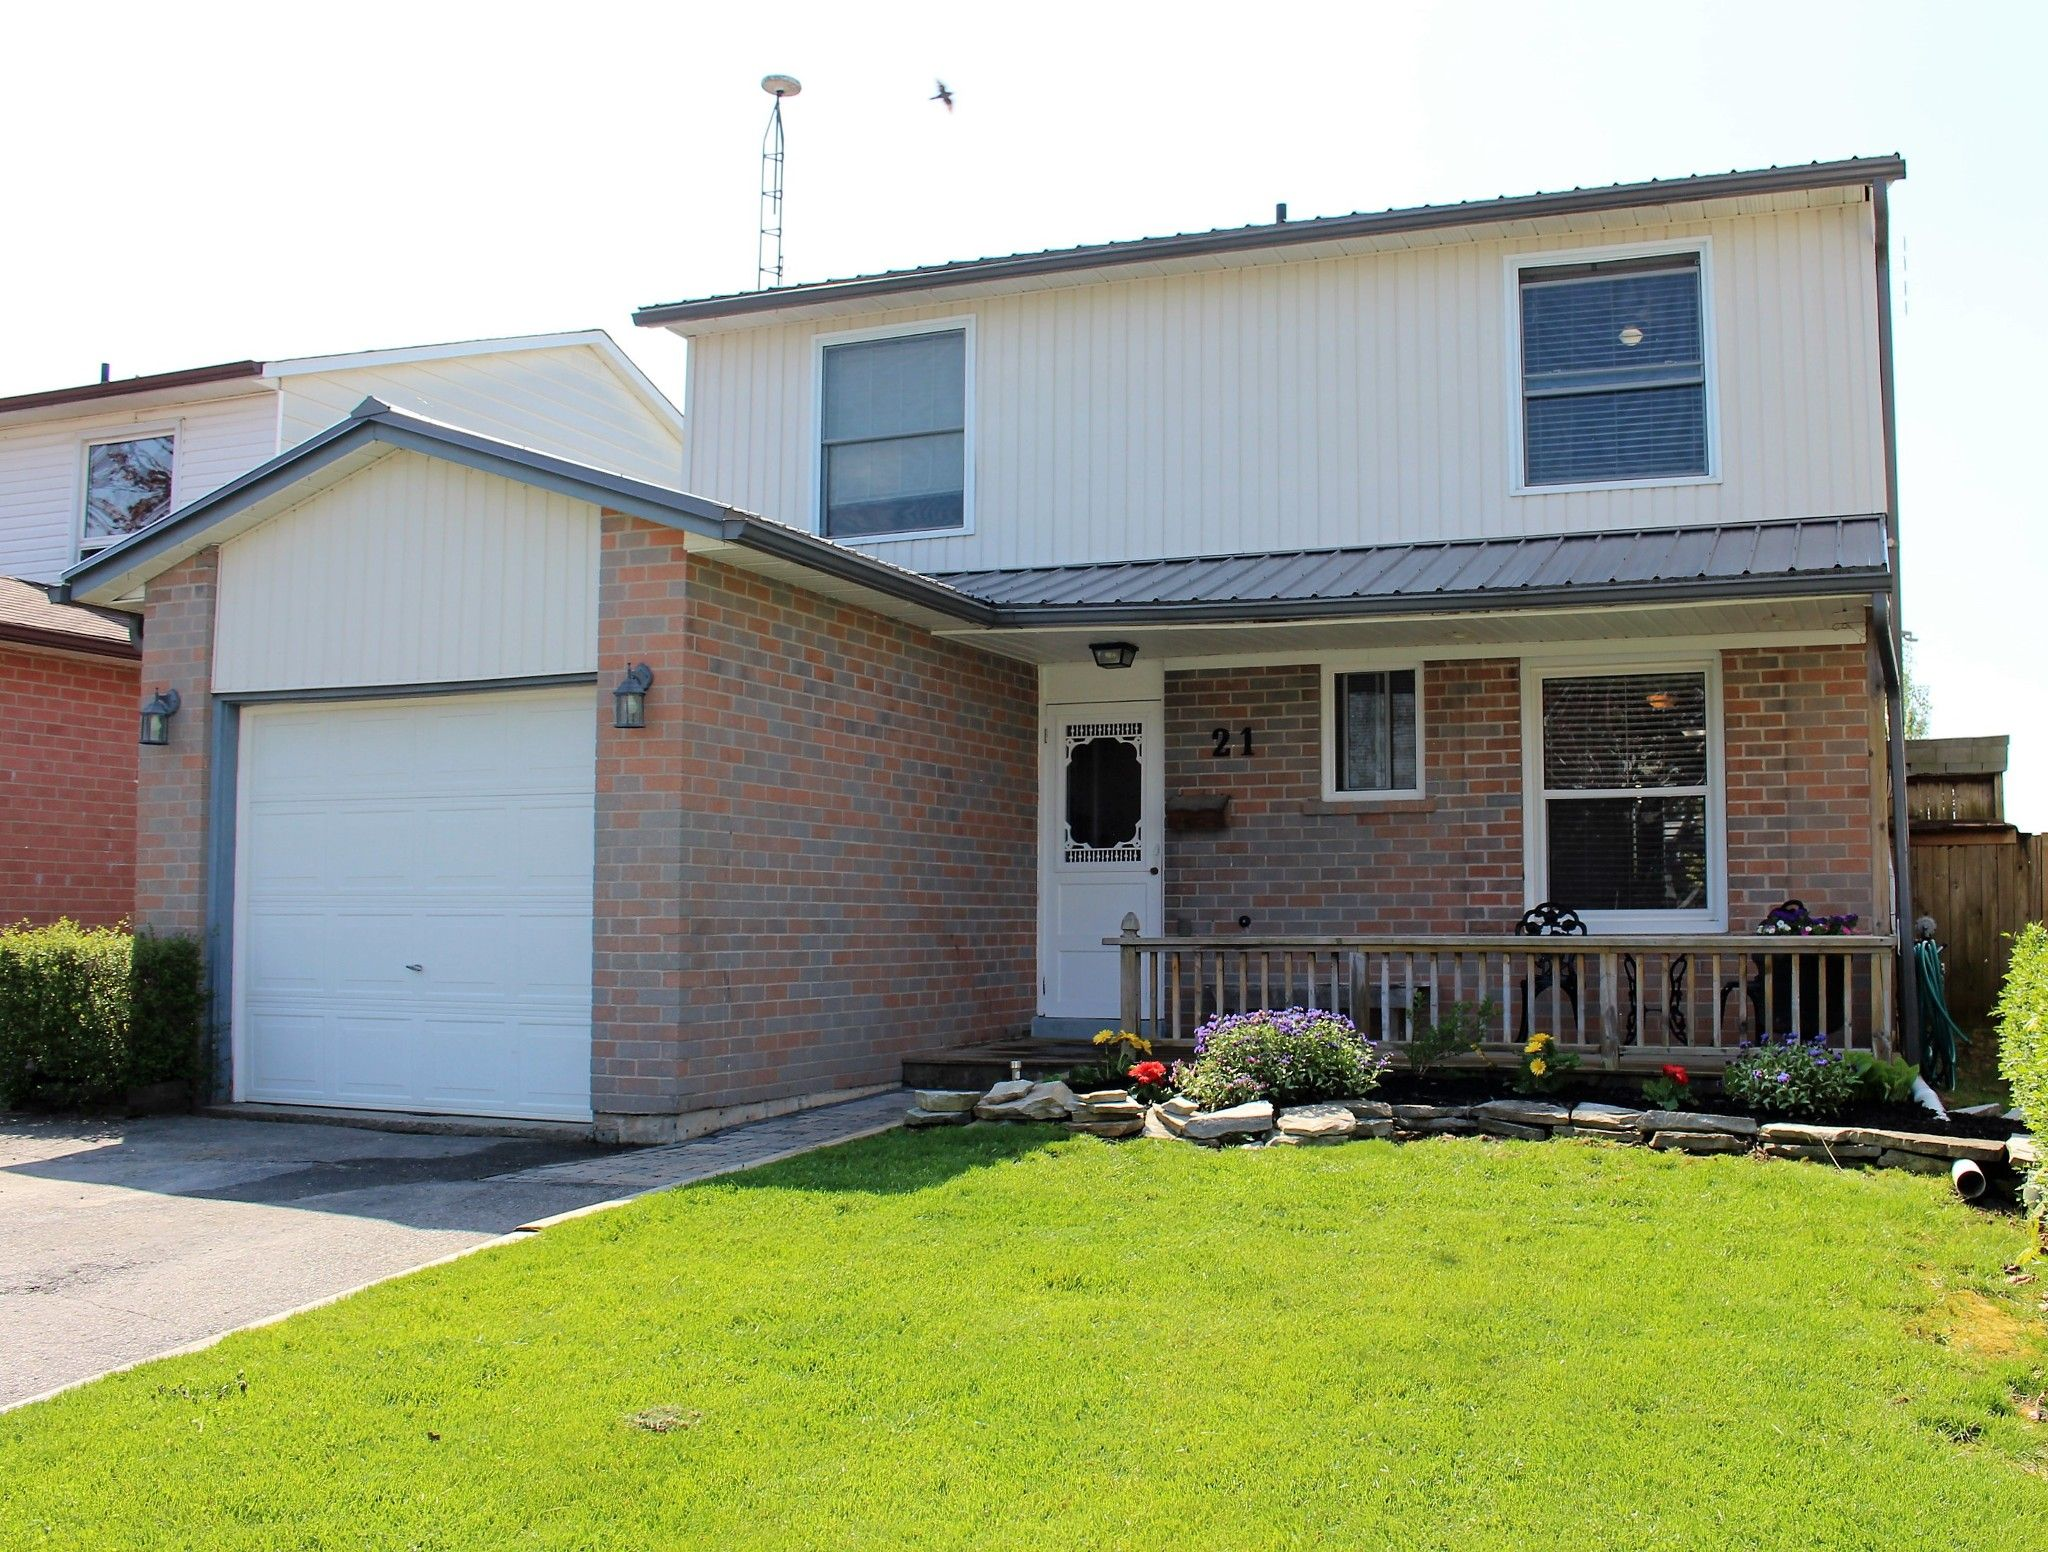 Main Photo: 21 Peacock Boulevard in Port Hope: House for sale : MLS®# X5242236